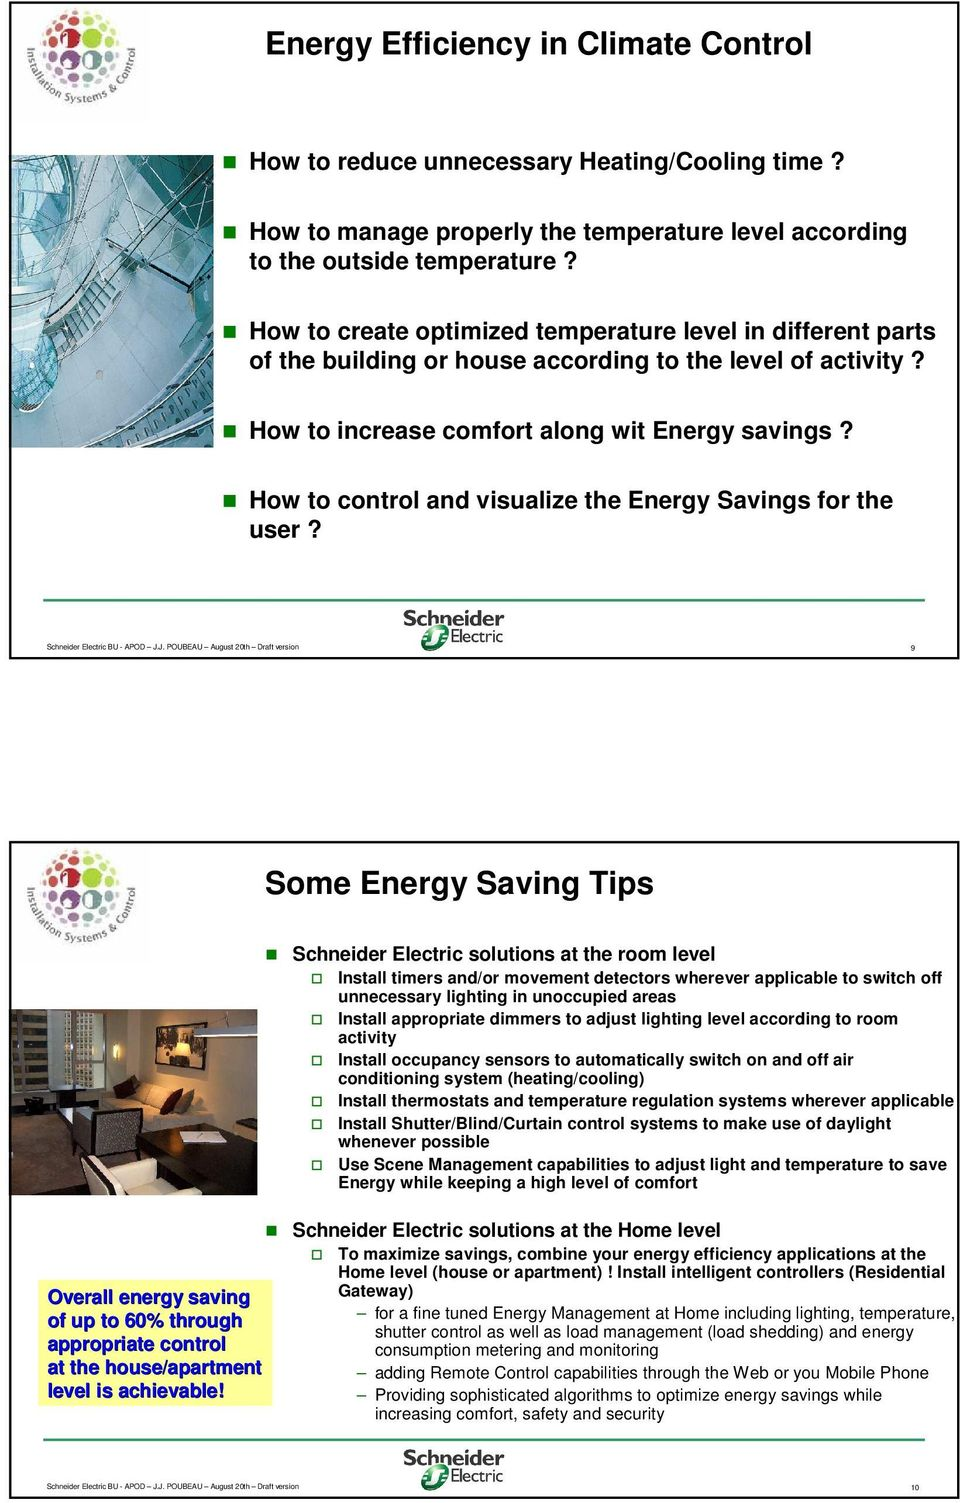 How to control and visualize the Energy Savings for the user? Schneider Electric BU - APOD J.